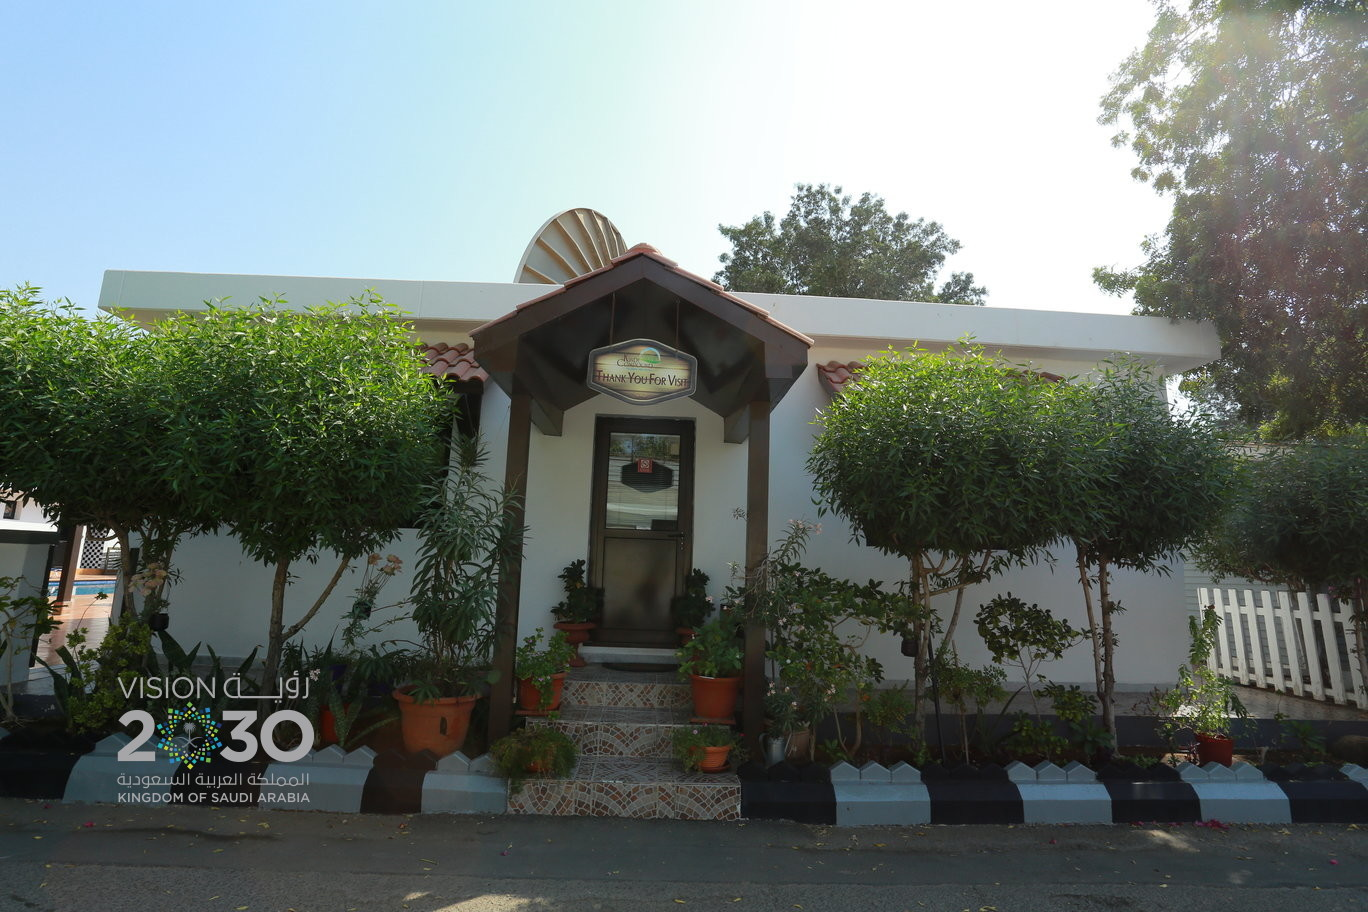 <br /> <b>Notice</b>:  Undefined variable: https://s3-ap-southeast-1.amazonaws.com/mycrm-pro-accounts-v2/property/full/1908/QHVI3xEnqWhhO1GE.jpeg in <b>/home/a2erfg/public_html/livingcompound.com/index.php</b> on line <b>552</b><br />